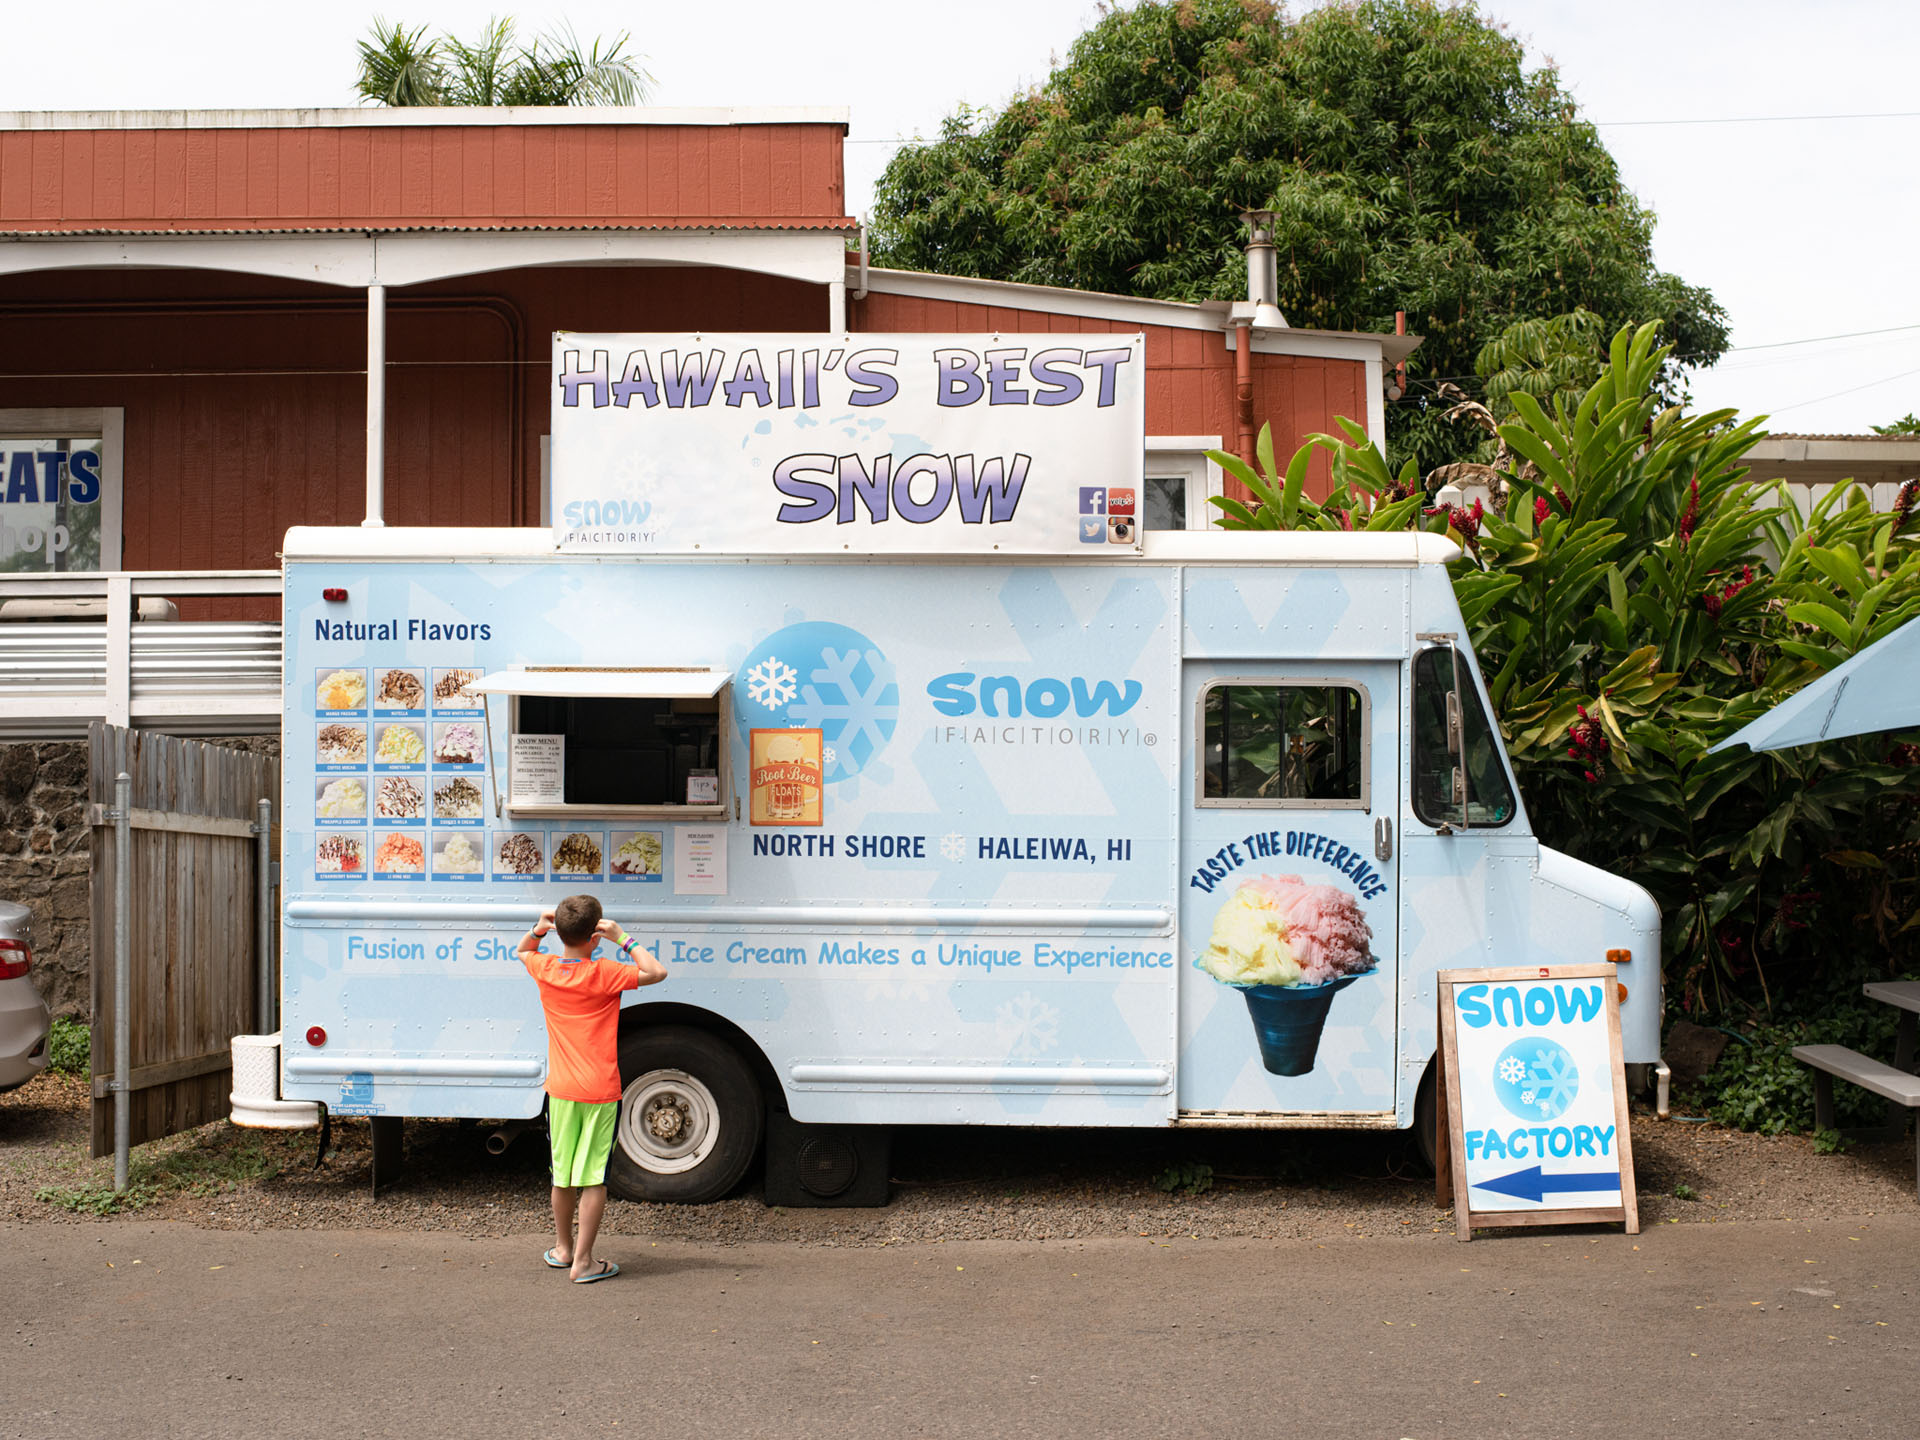 little boy in orange shirt standing in front of food truck selling shave ice snow ice by Alexi Hobbs in Hawai'i for enRoute Magazine